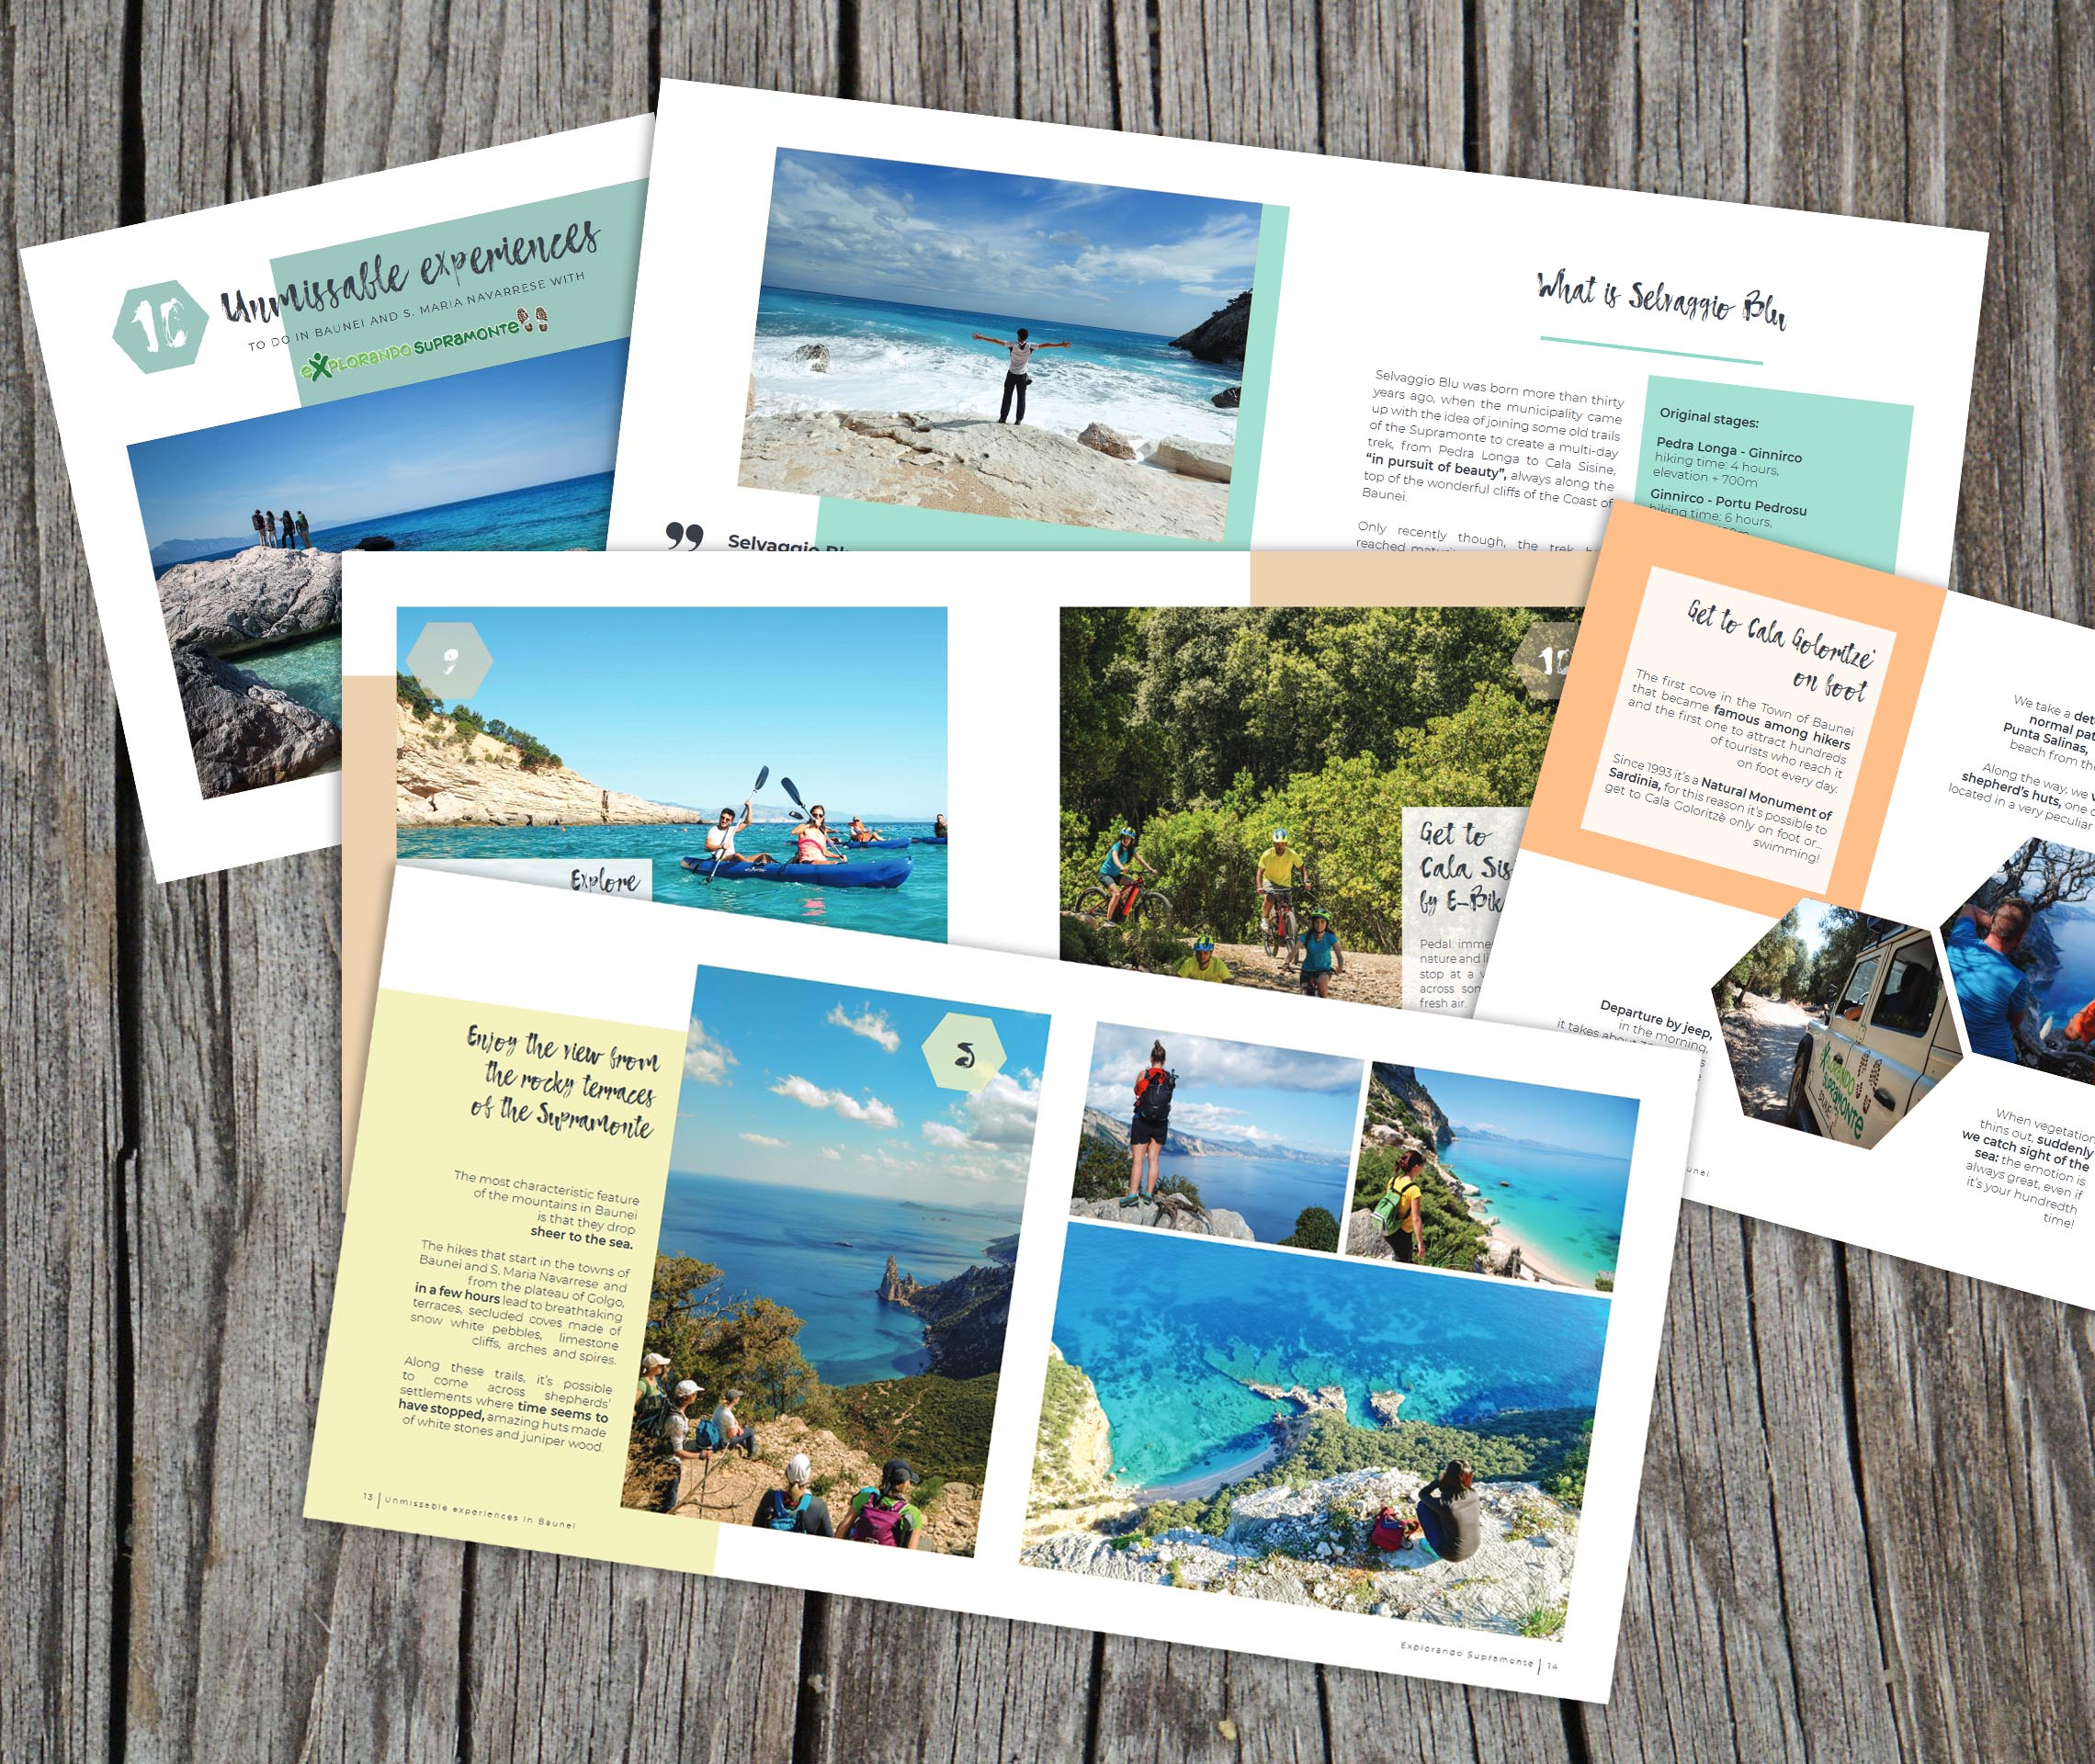 download our guidebook for free!